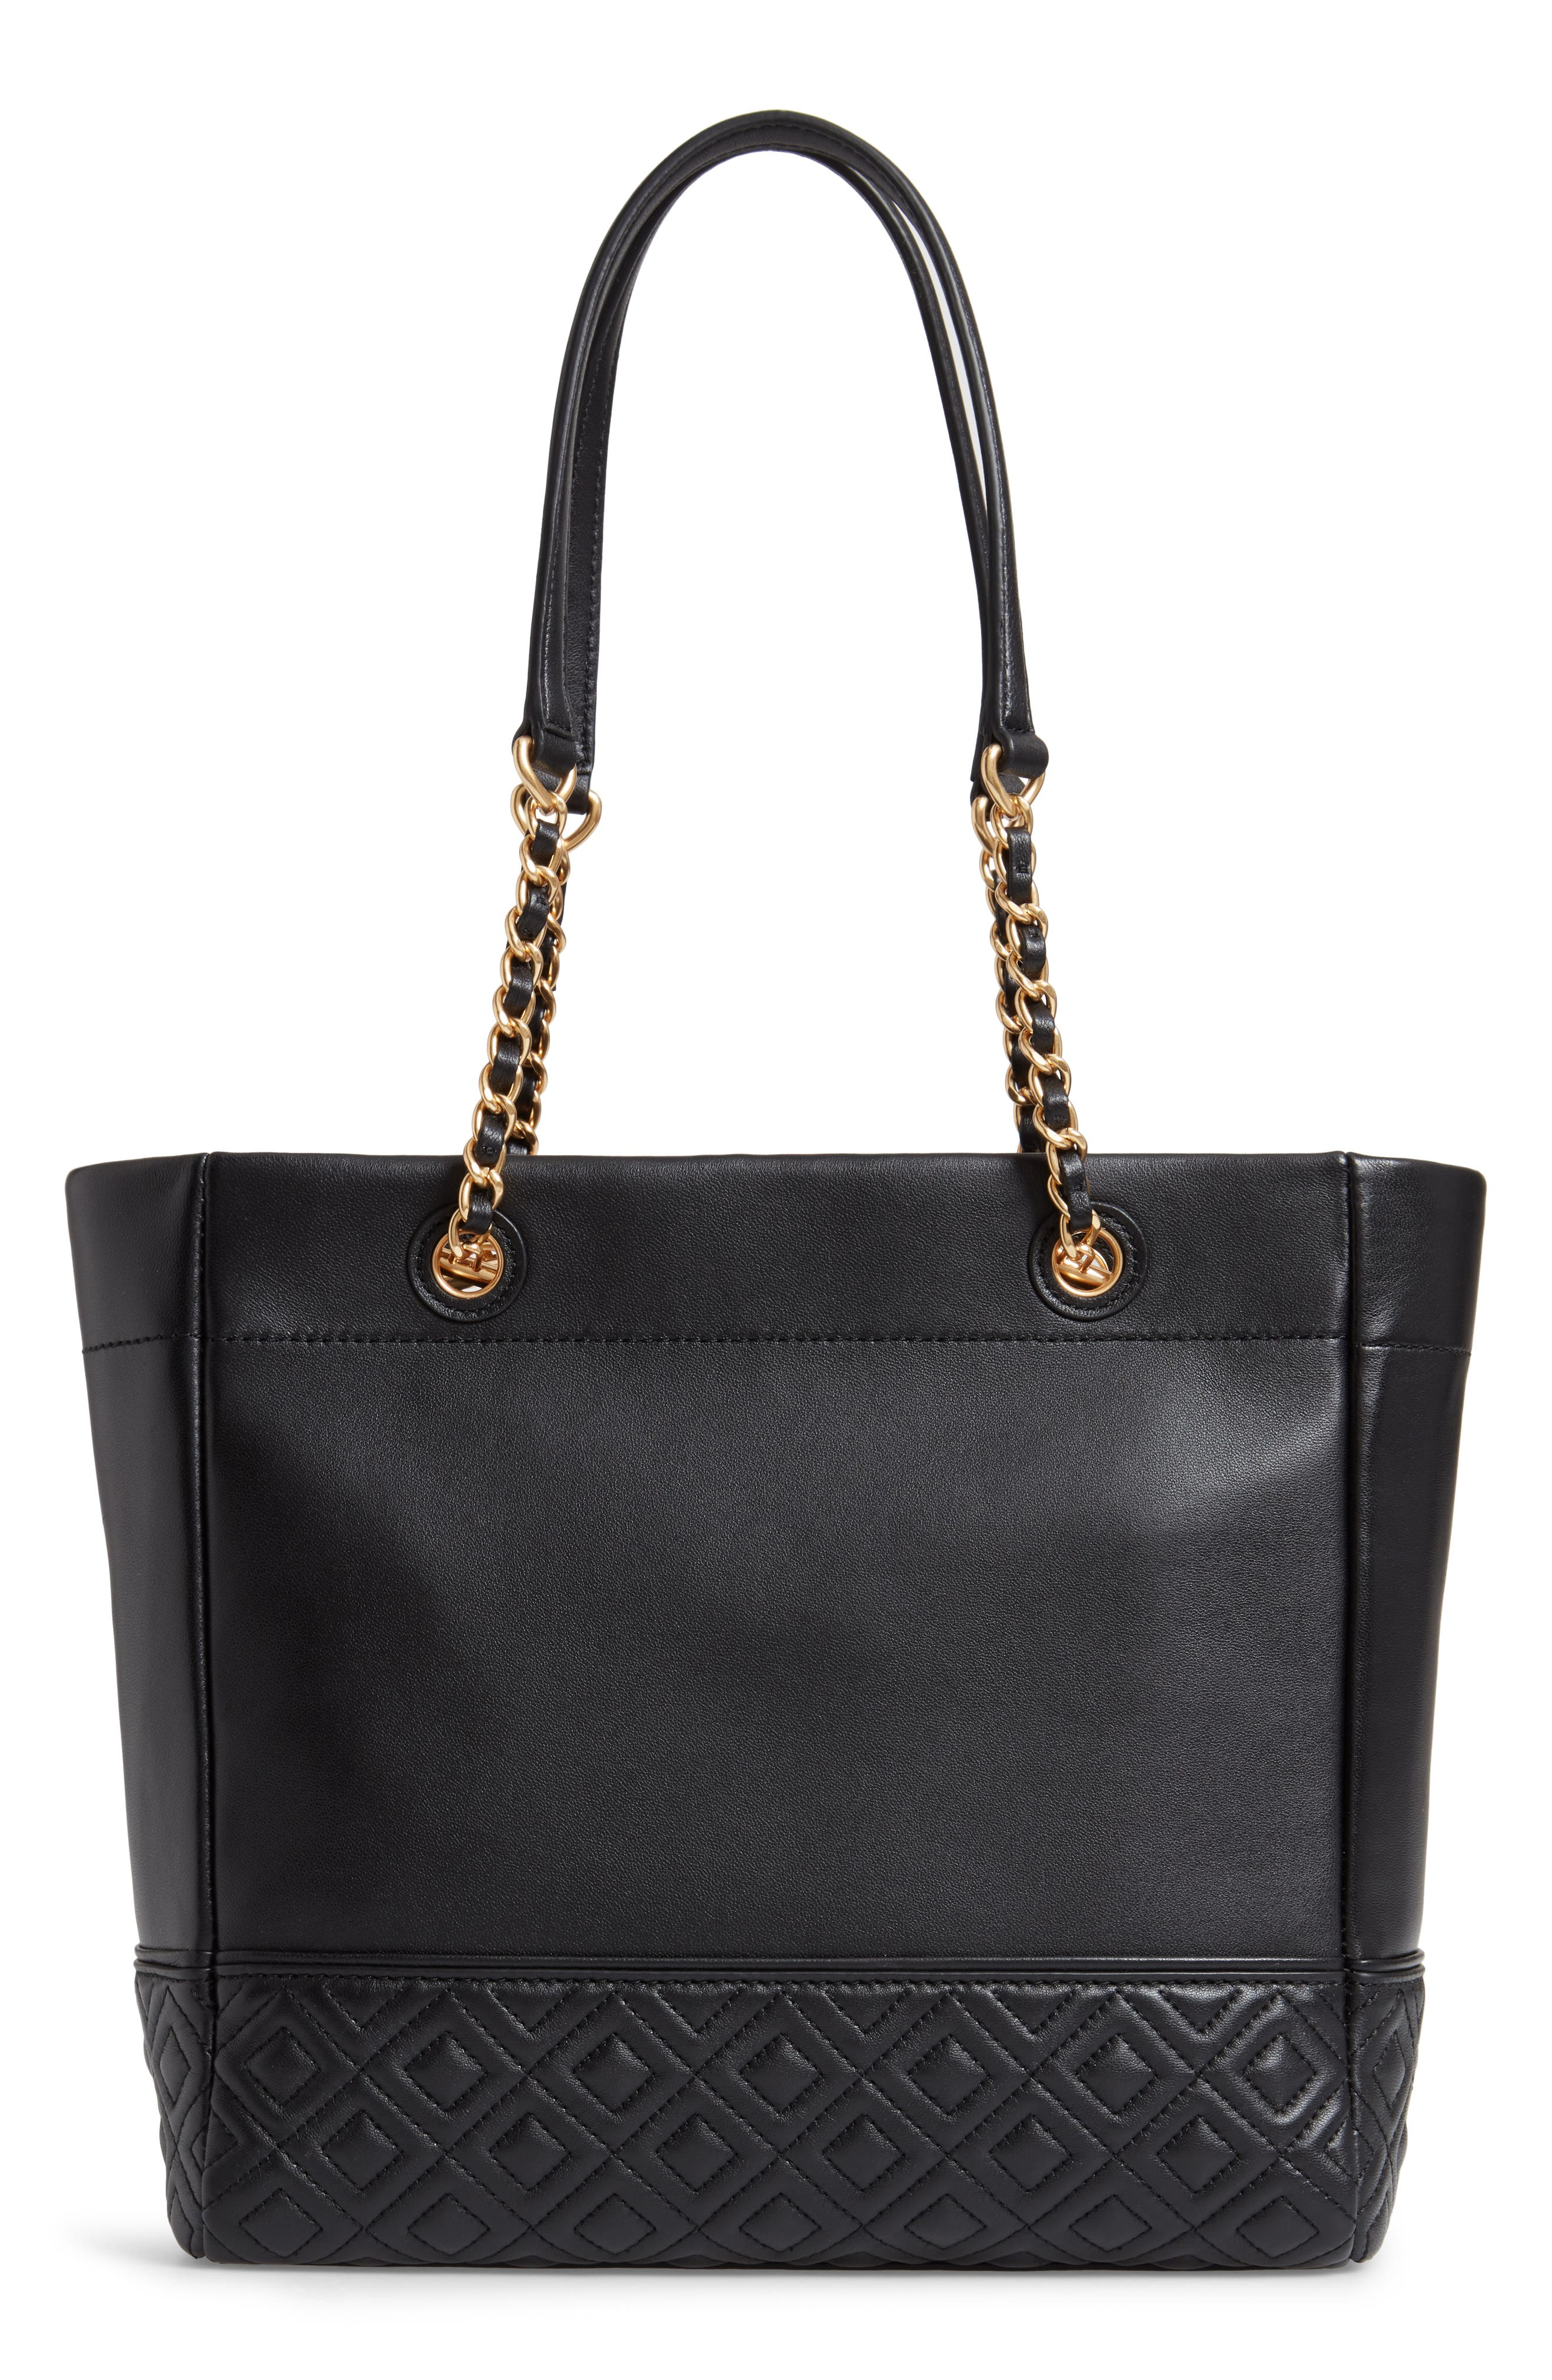 TORY BURCH, Fleming Leather Tote, Alternate thumbnail 4, color, BLACK